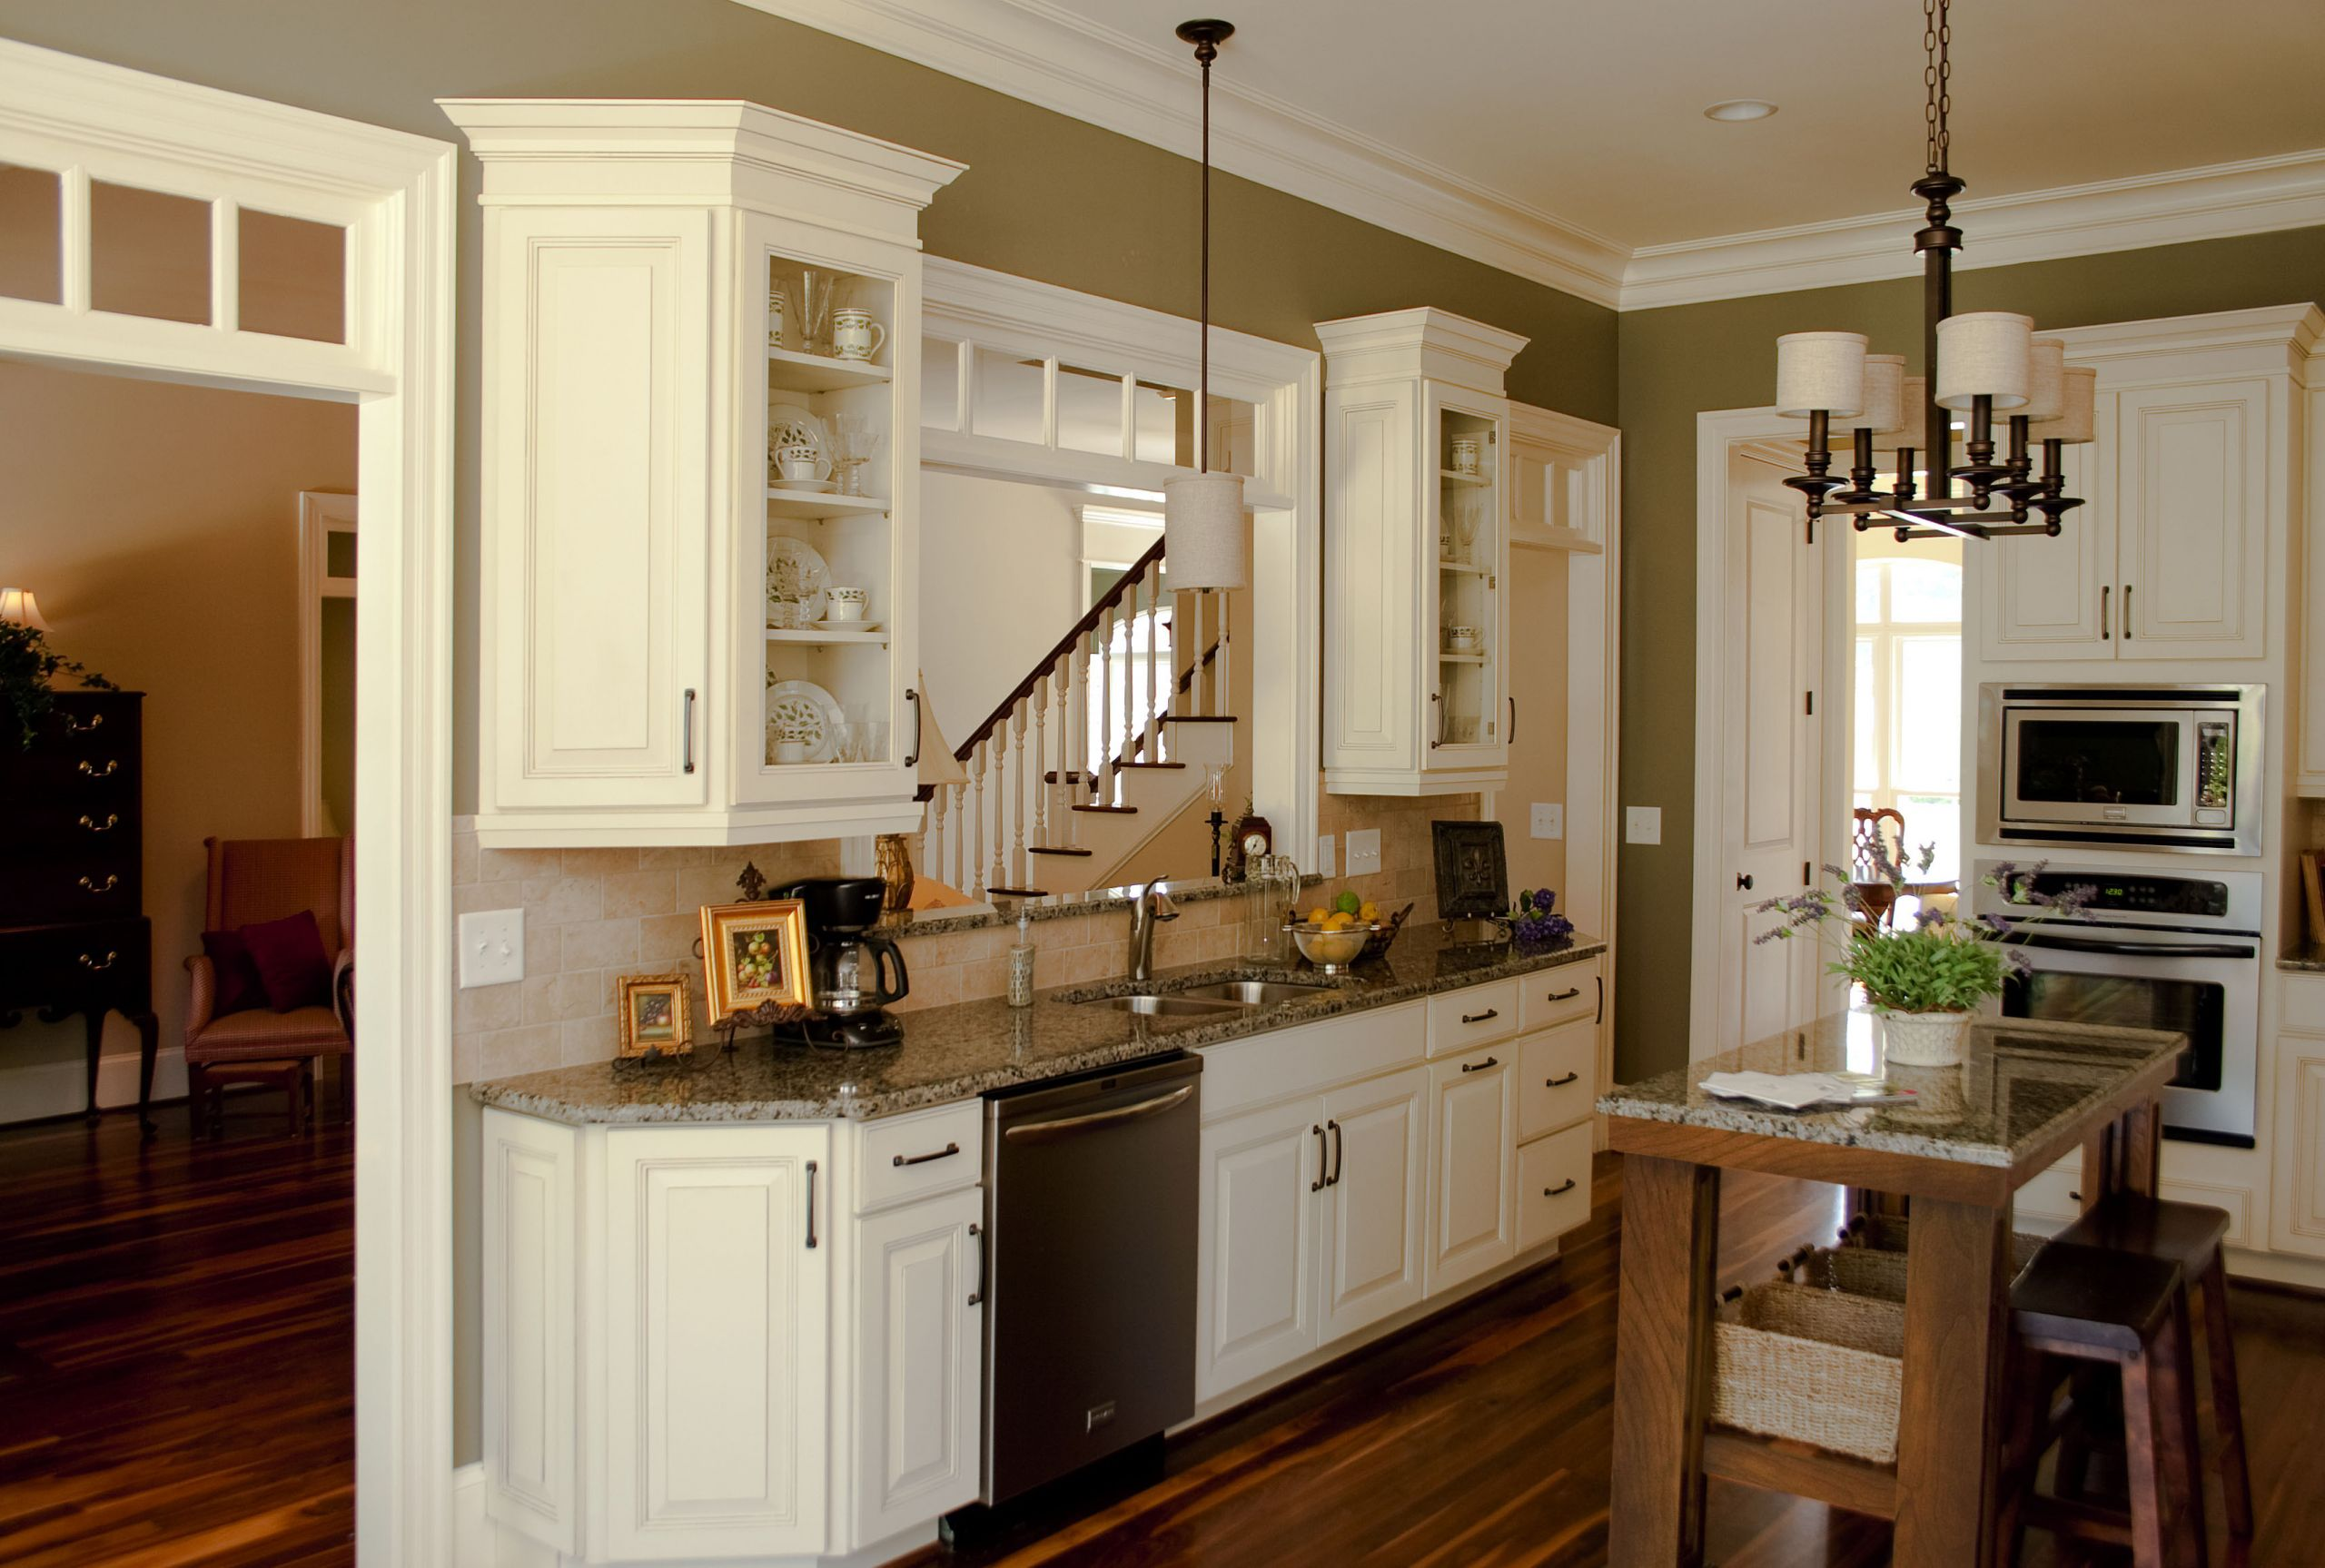 Wall Cabinet Kitchen  Wall End Angle Cabinets A Stylish Design Touch